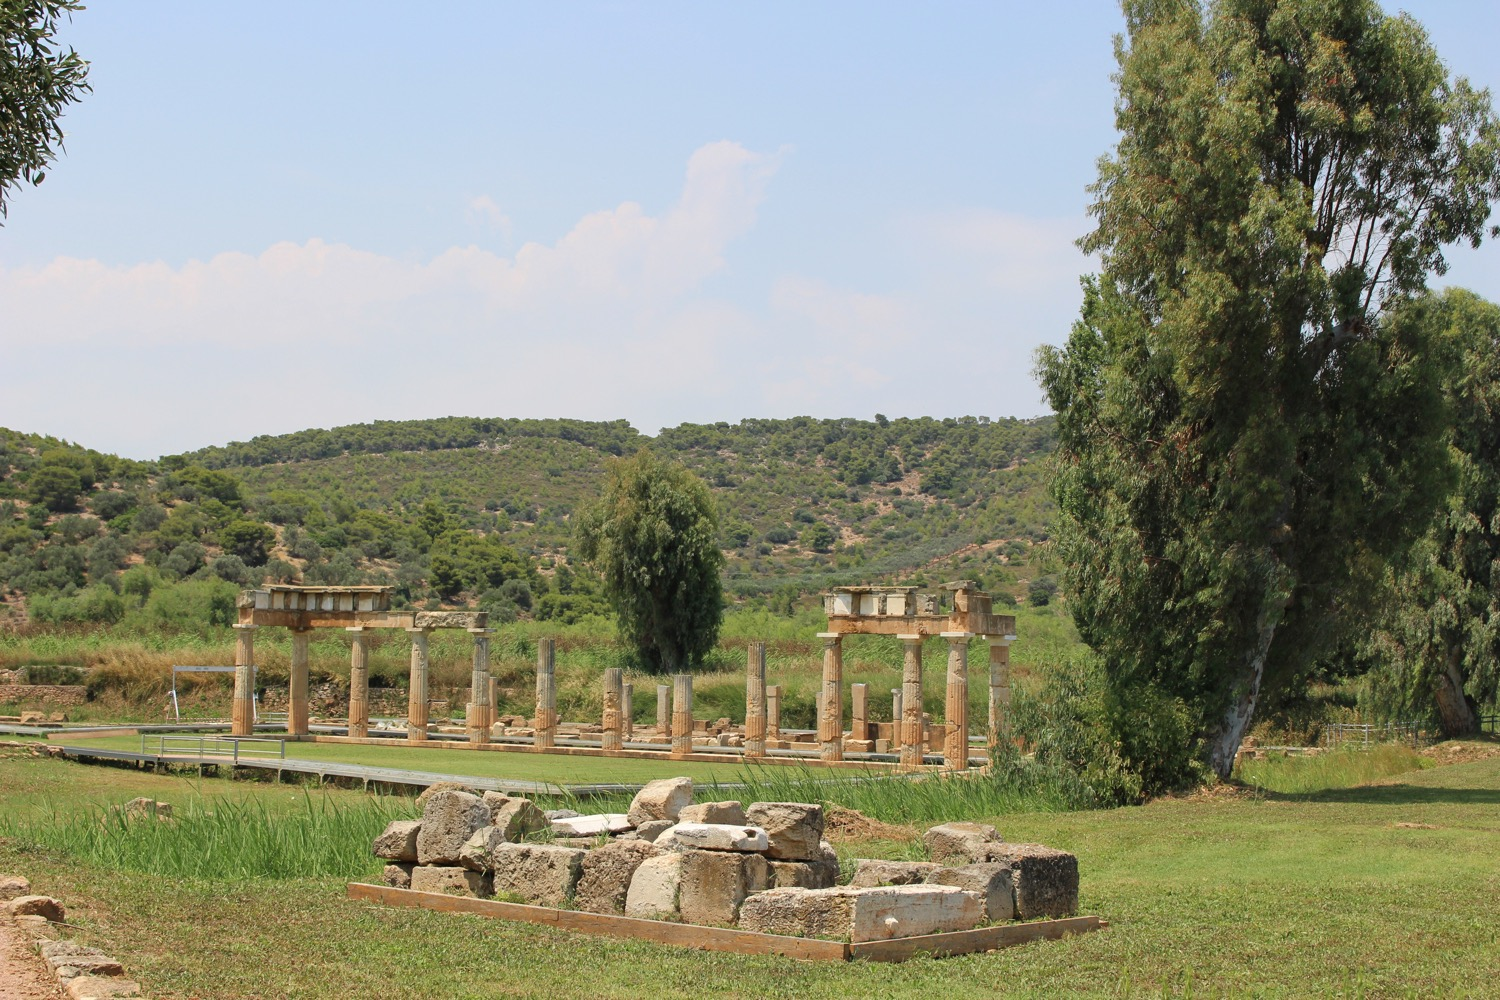 The arcade of Artemis' temple in Brauron